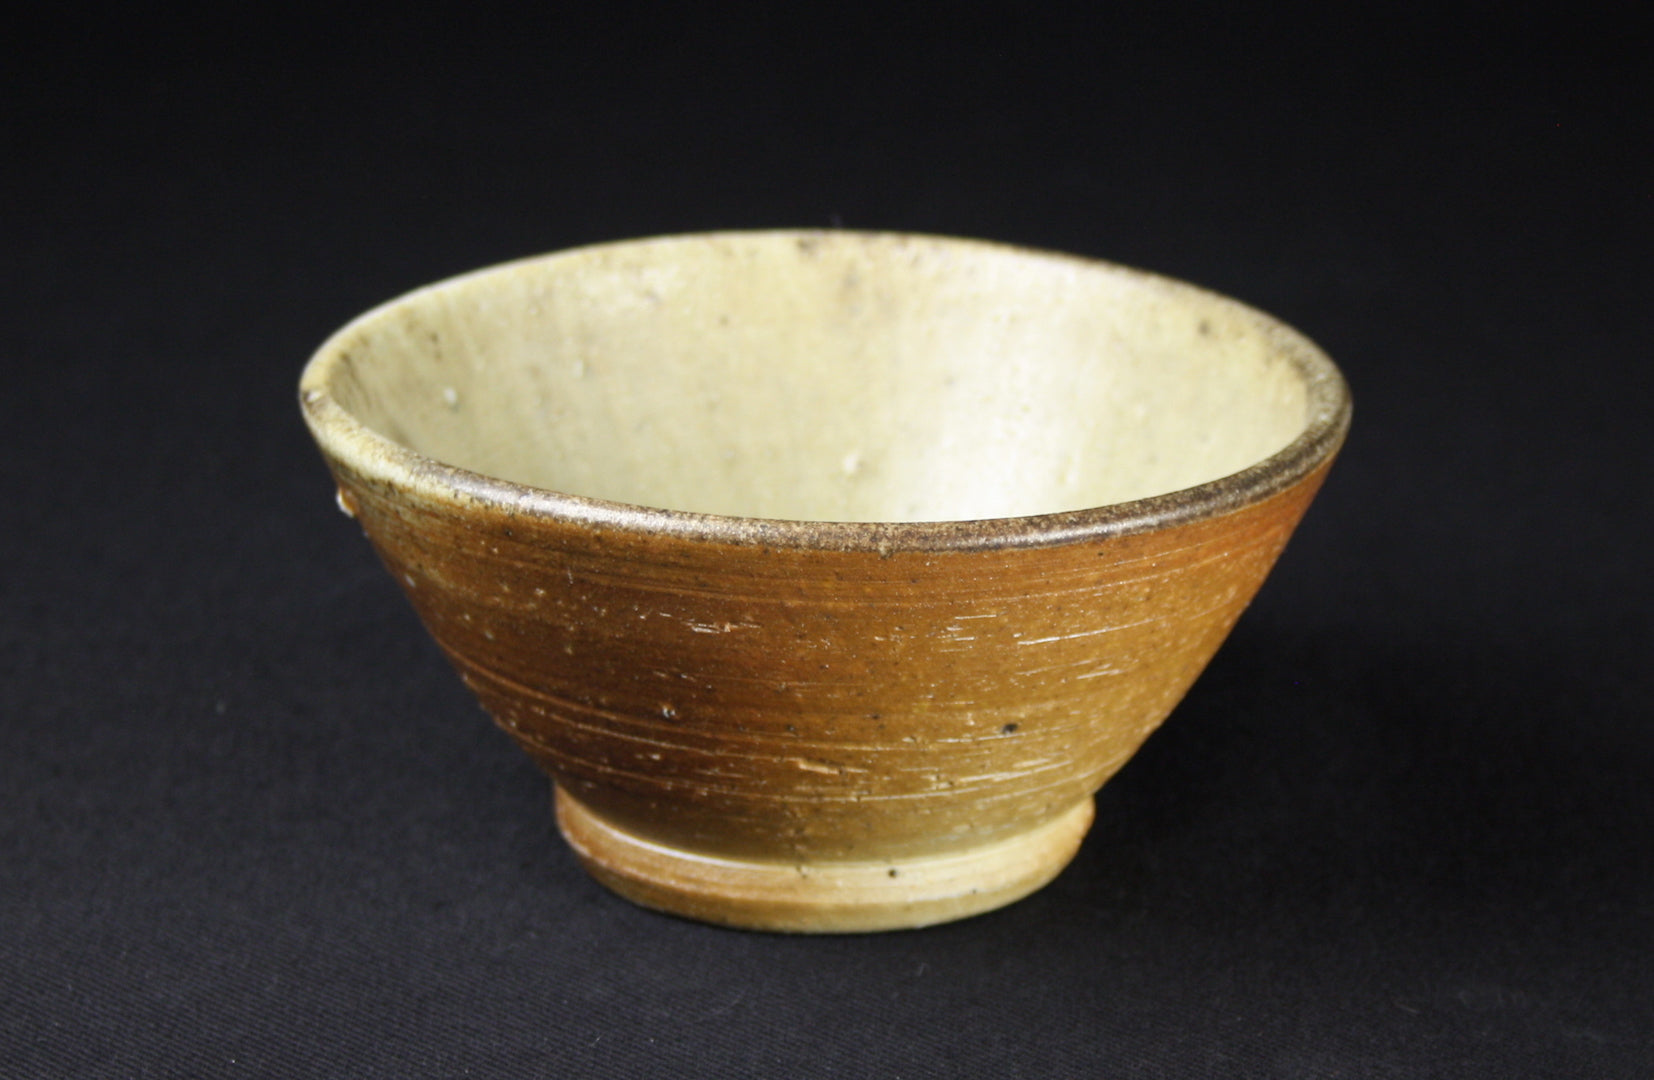 Small bowls, turned foot, 6cm high, 13cm dia., ash celadon glaze, natural flashing